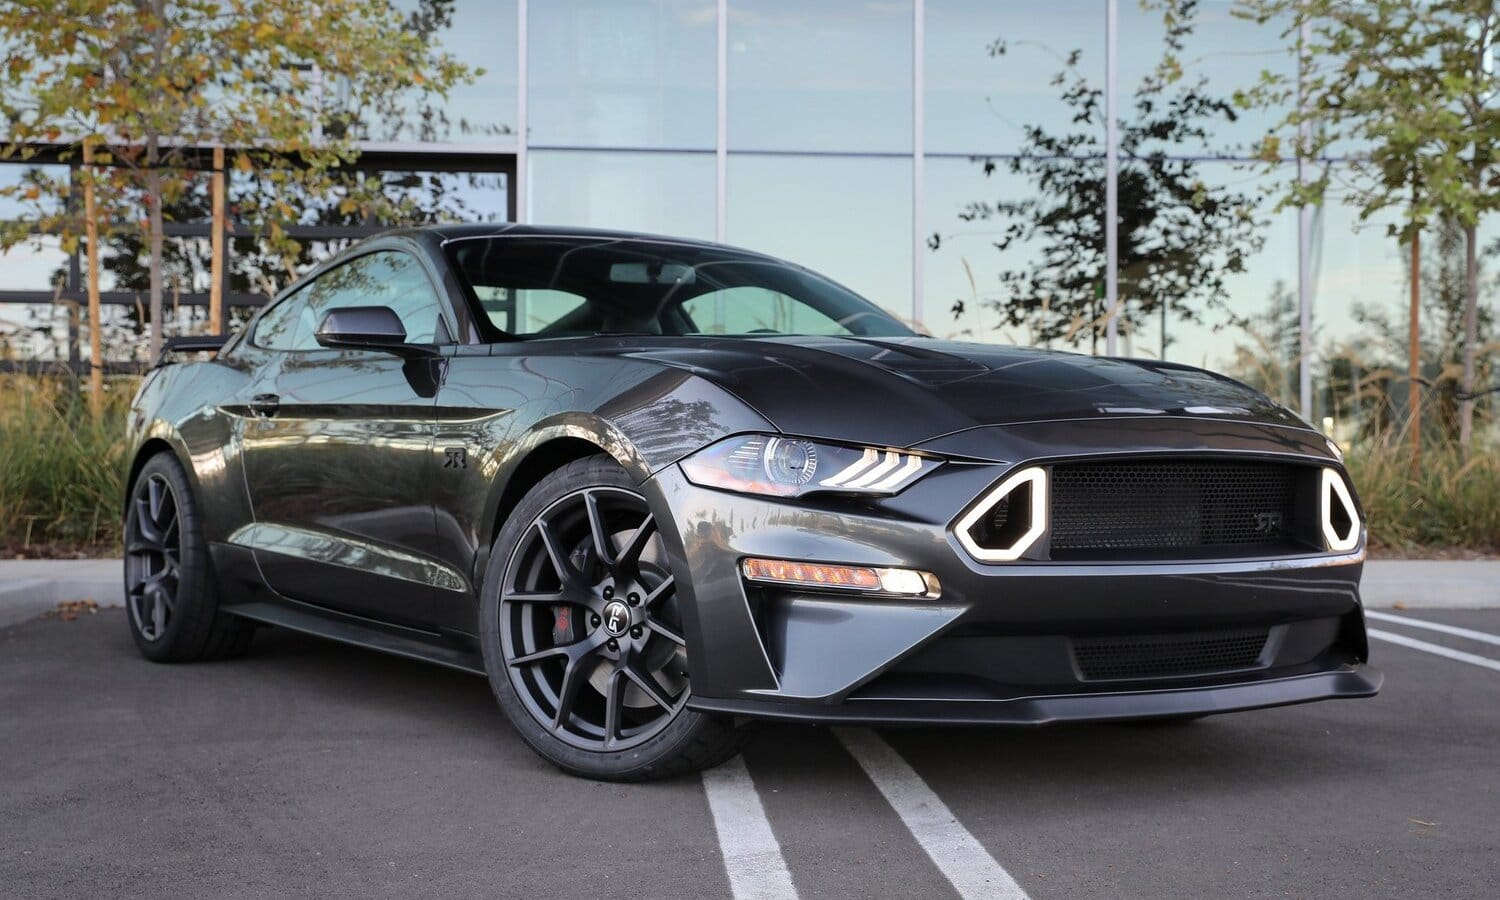 Ford Mustang RTR Series 1